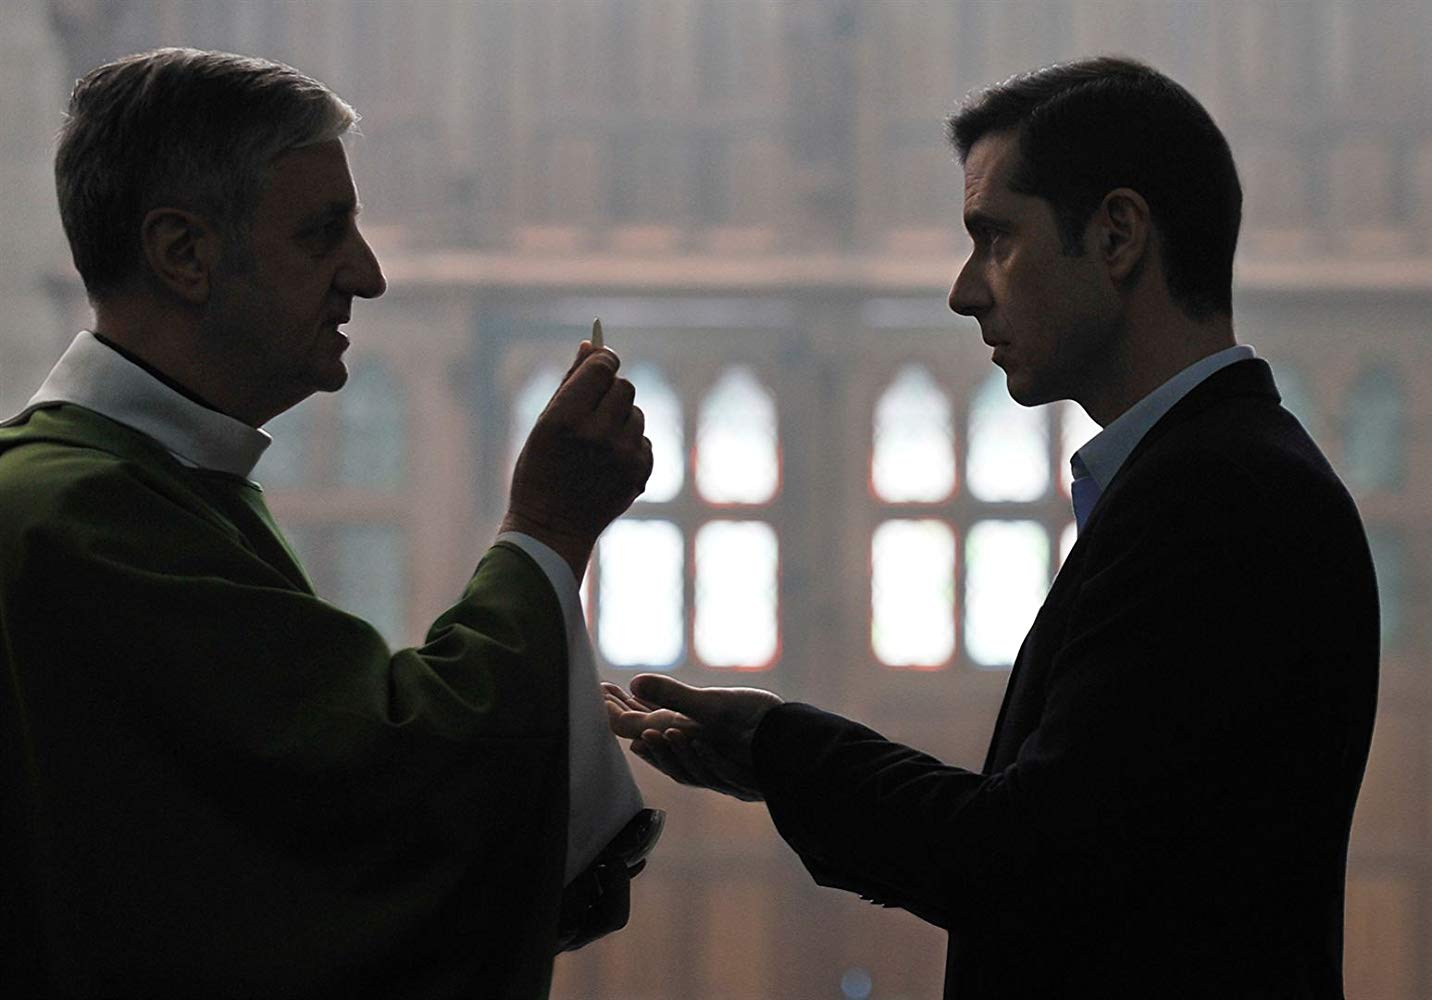 By the Grace of God, a priest and man talking in the church